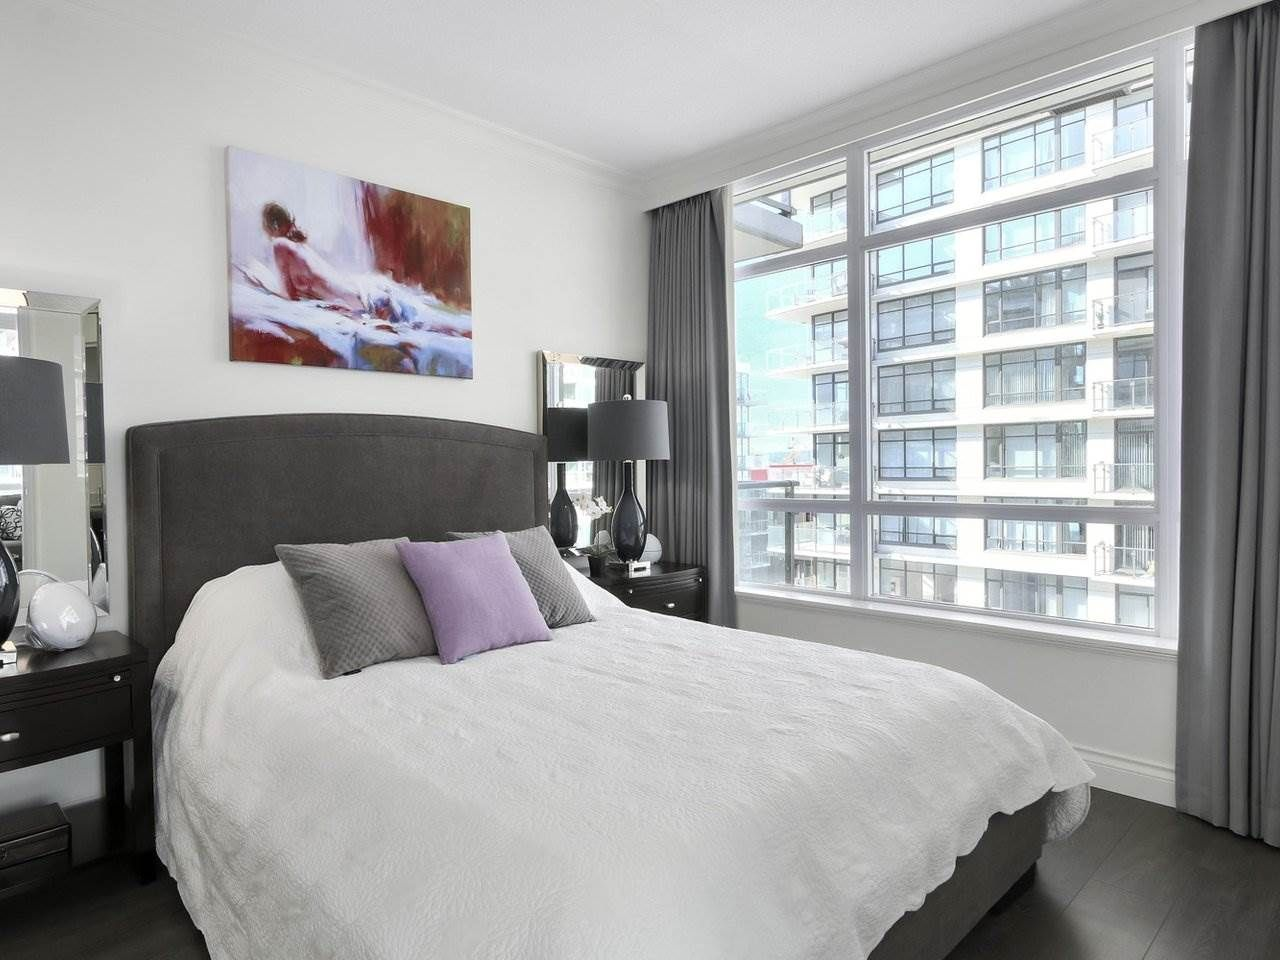 """Photo 11: Photos: 608 172 VICTORY SHIP Way in North Vancouver: Lower Lonsdale Condo for sale in """"Atrium at the Pier"""" : MLS®# R2454404"""